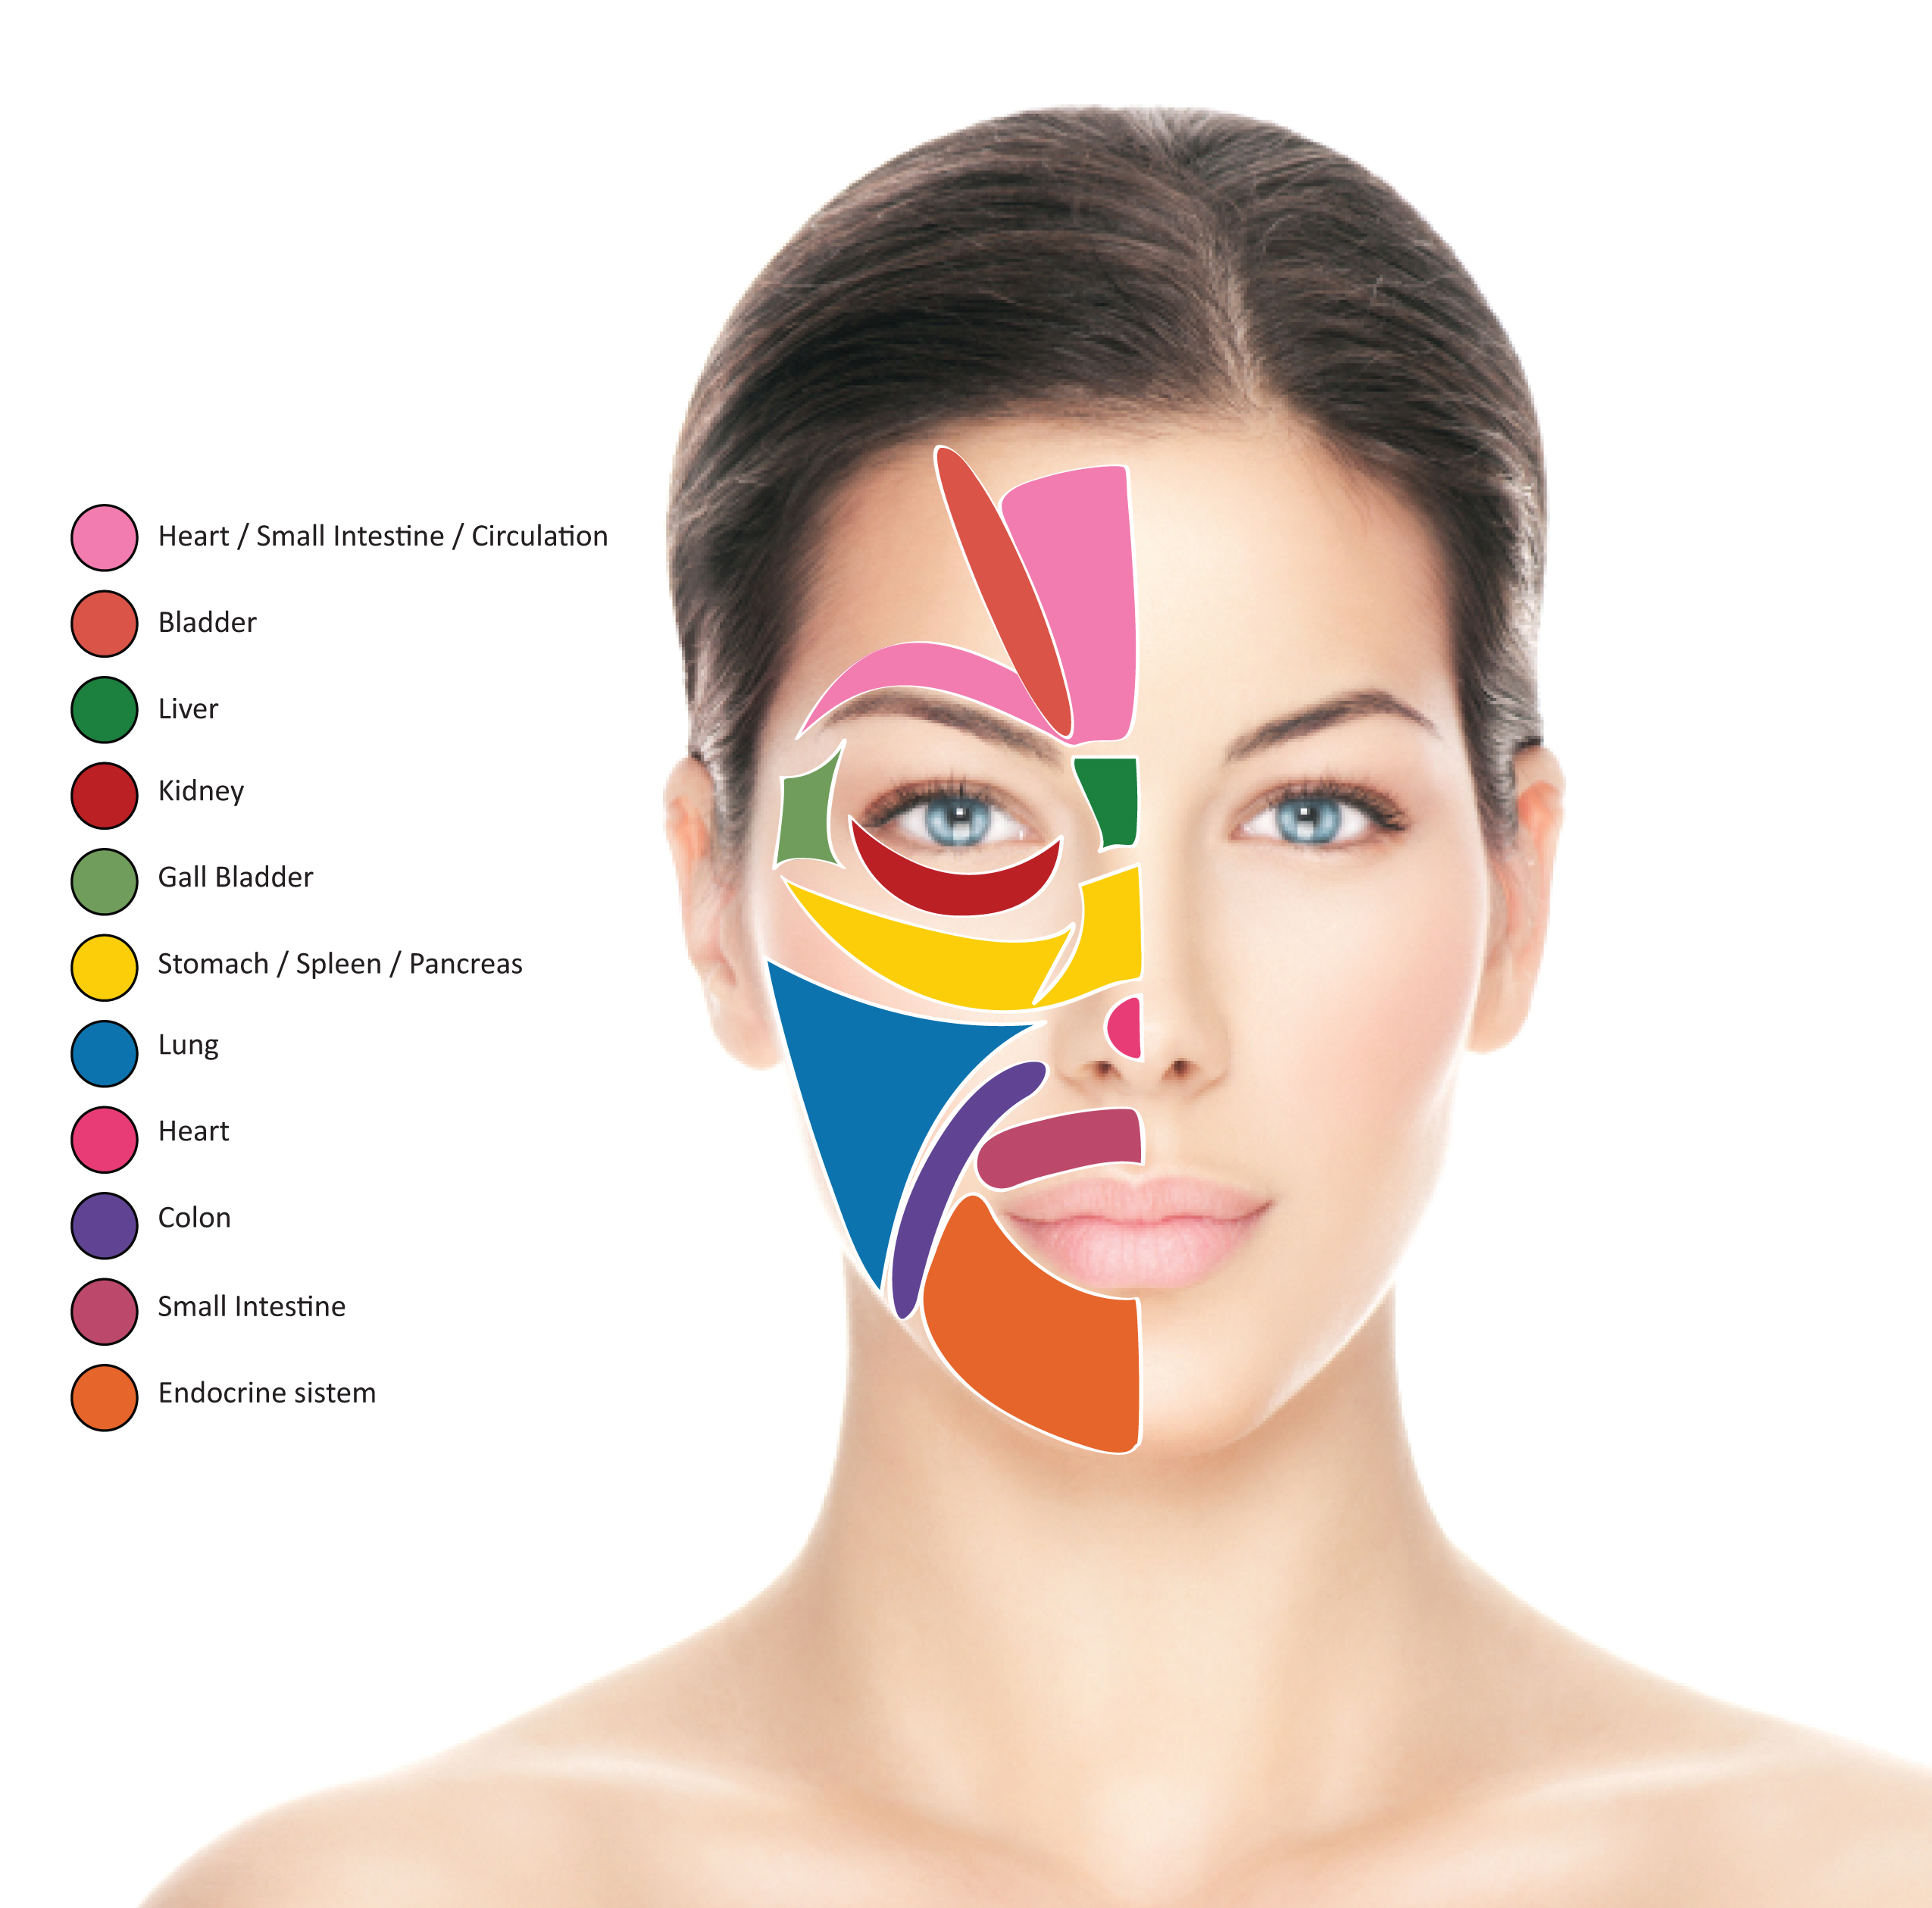 Facial reflexology map